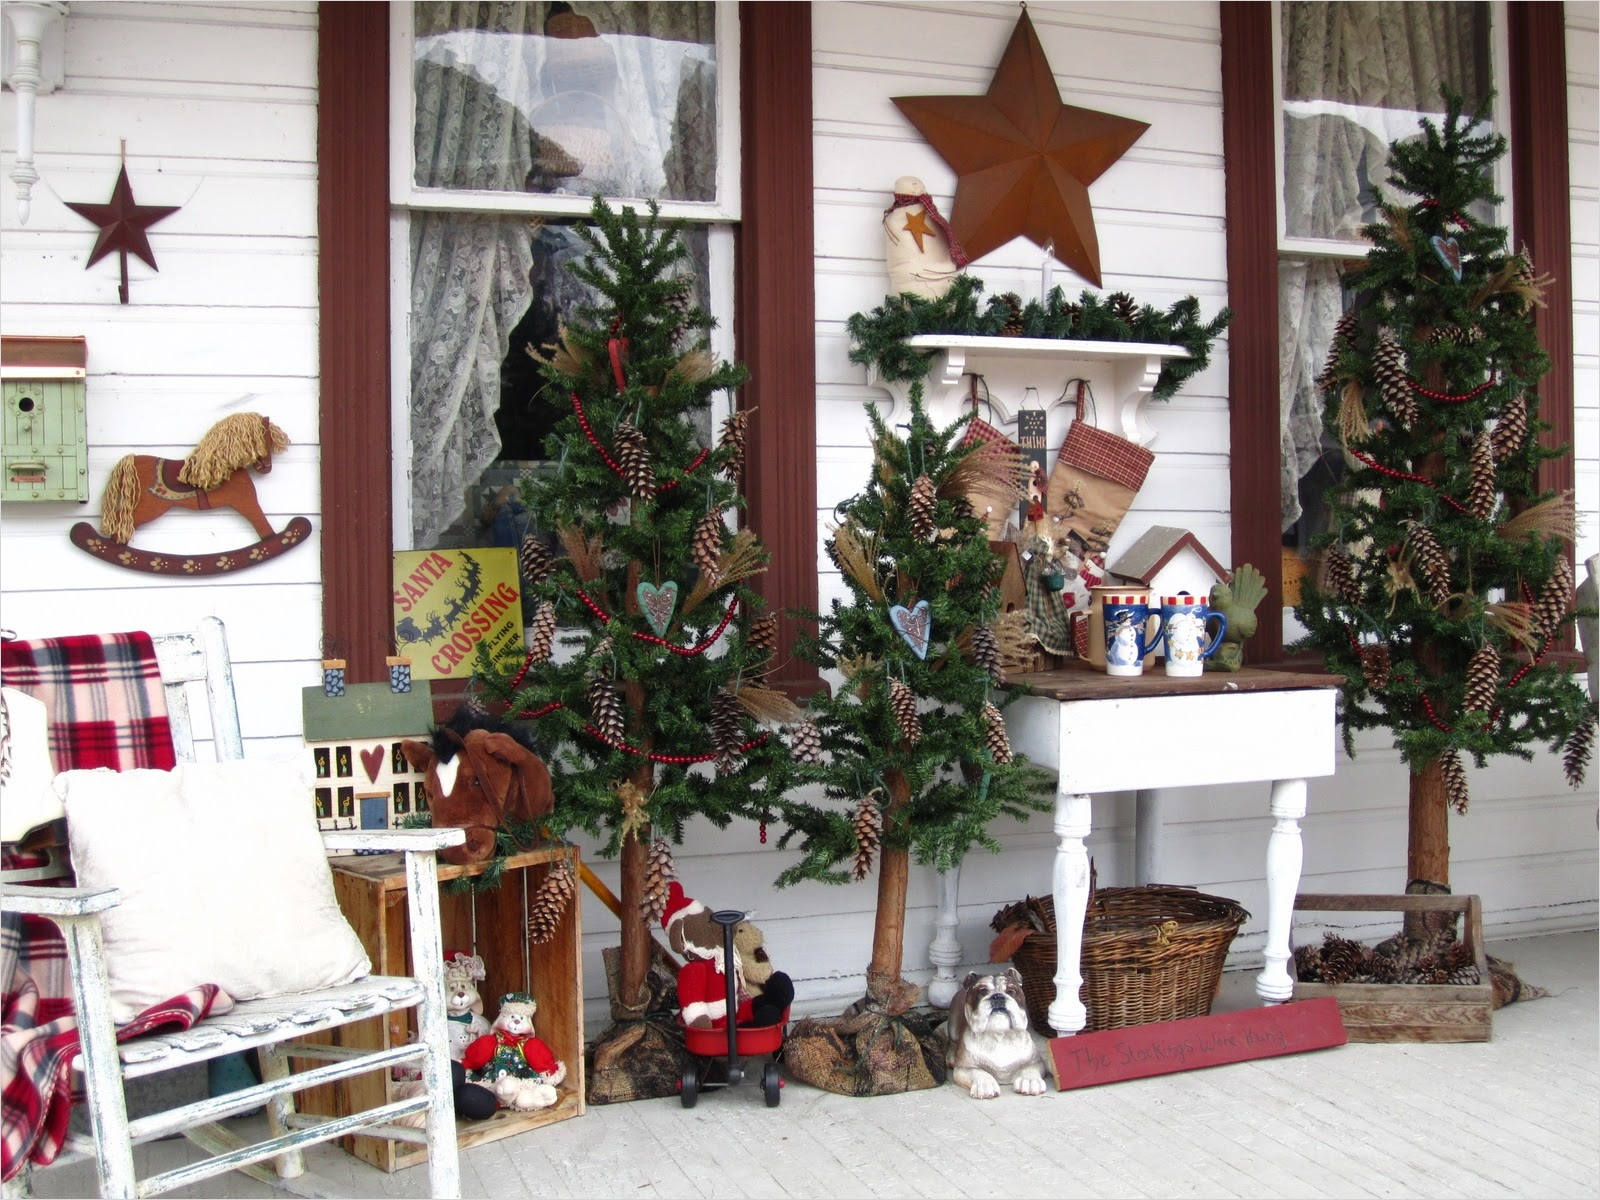 41 Amazing Country Christmas Decorating Ideas 75 Suesjunktreasures Rustic Country Christmas On My Front Porch 7